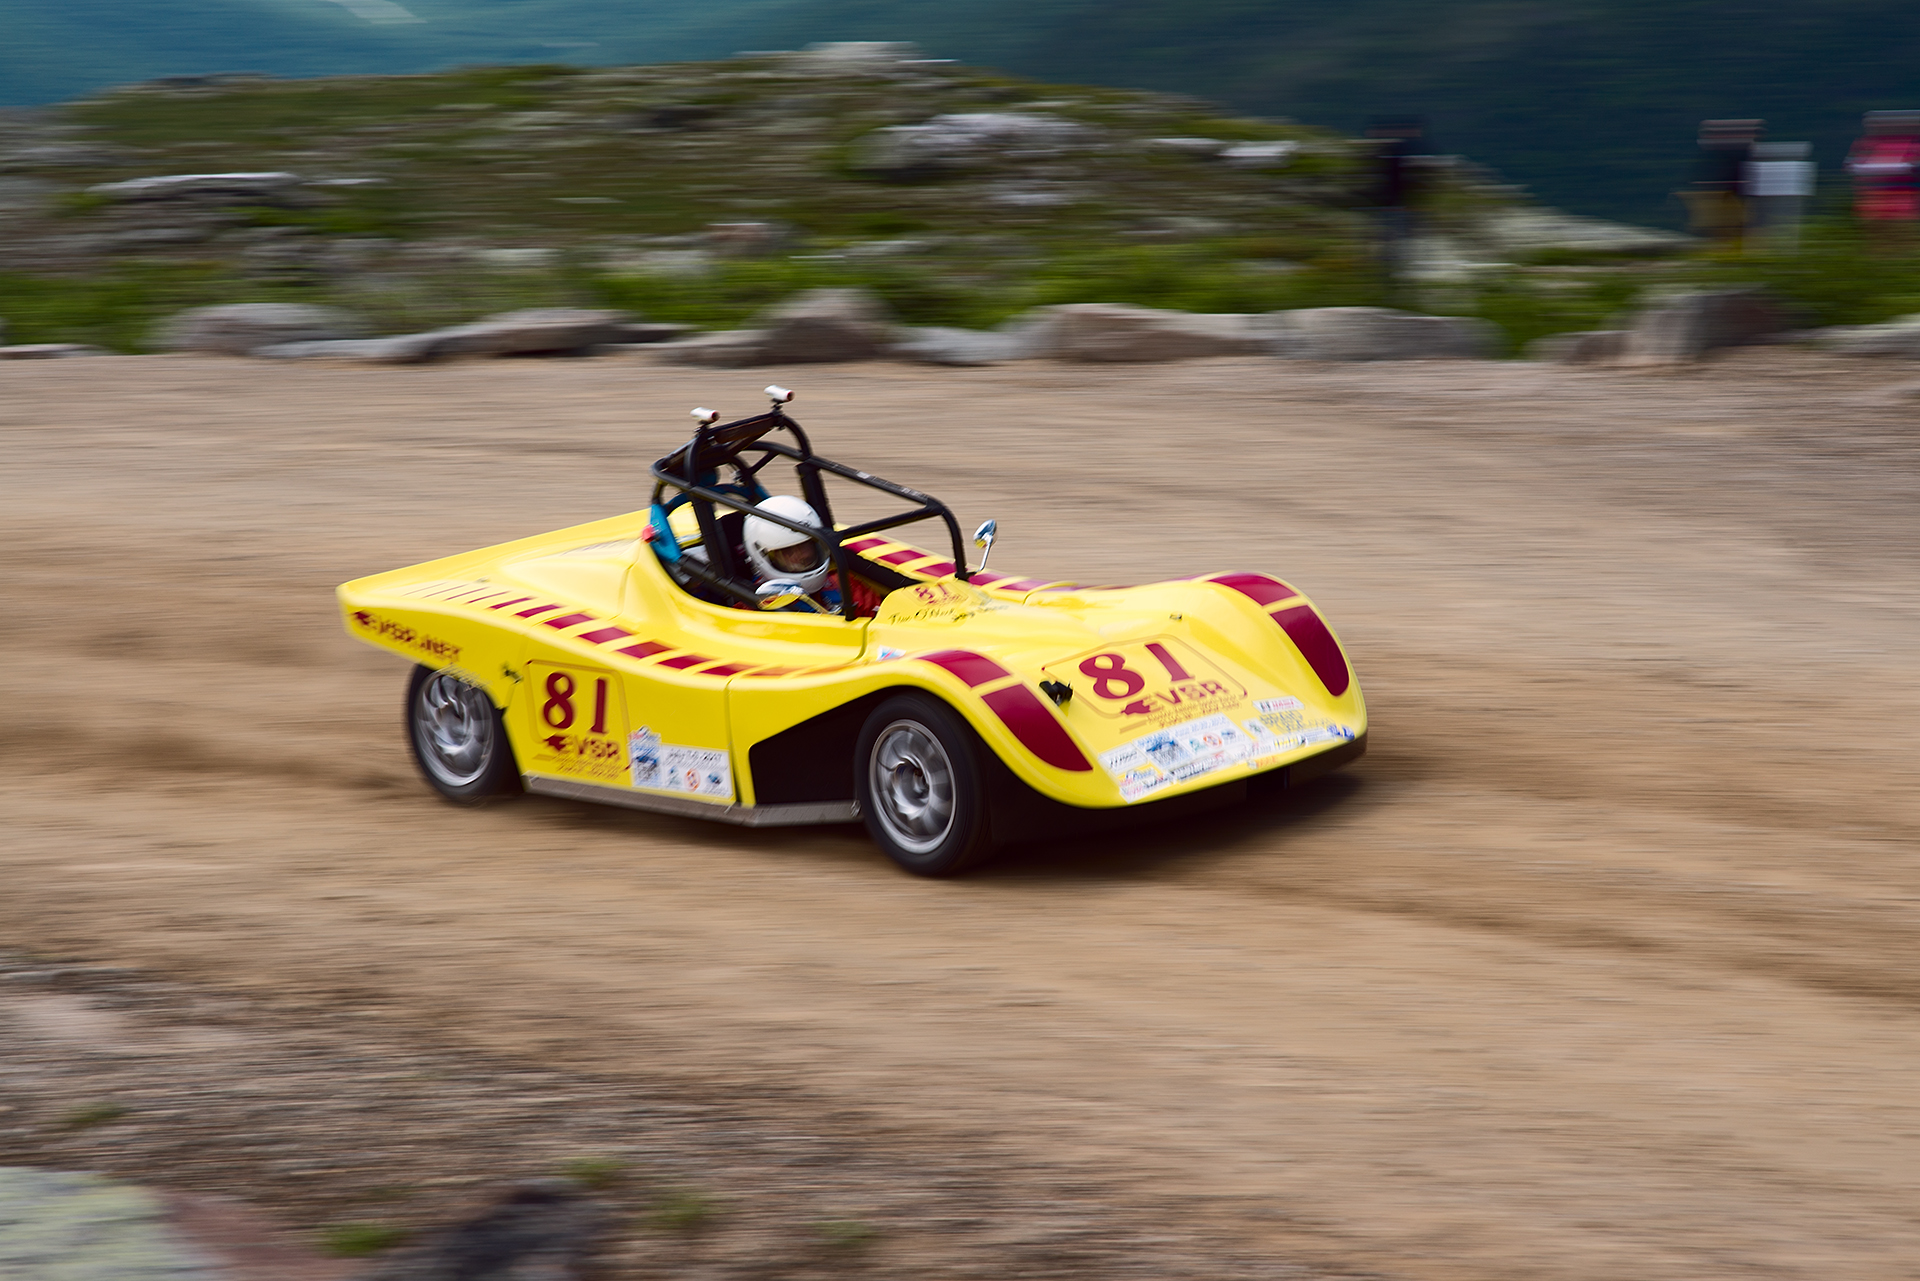 Car 81 at Climb to the Clouds 2017